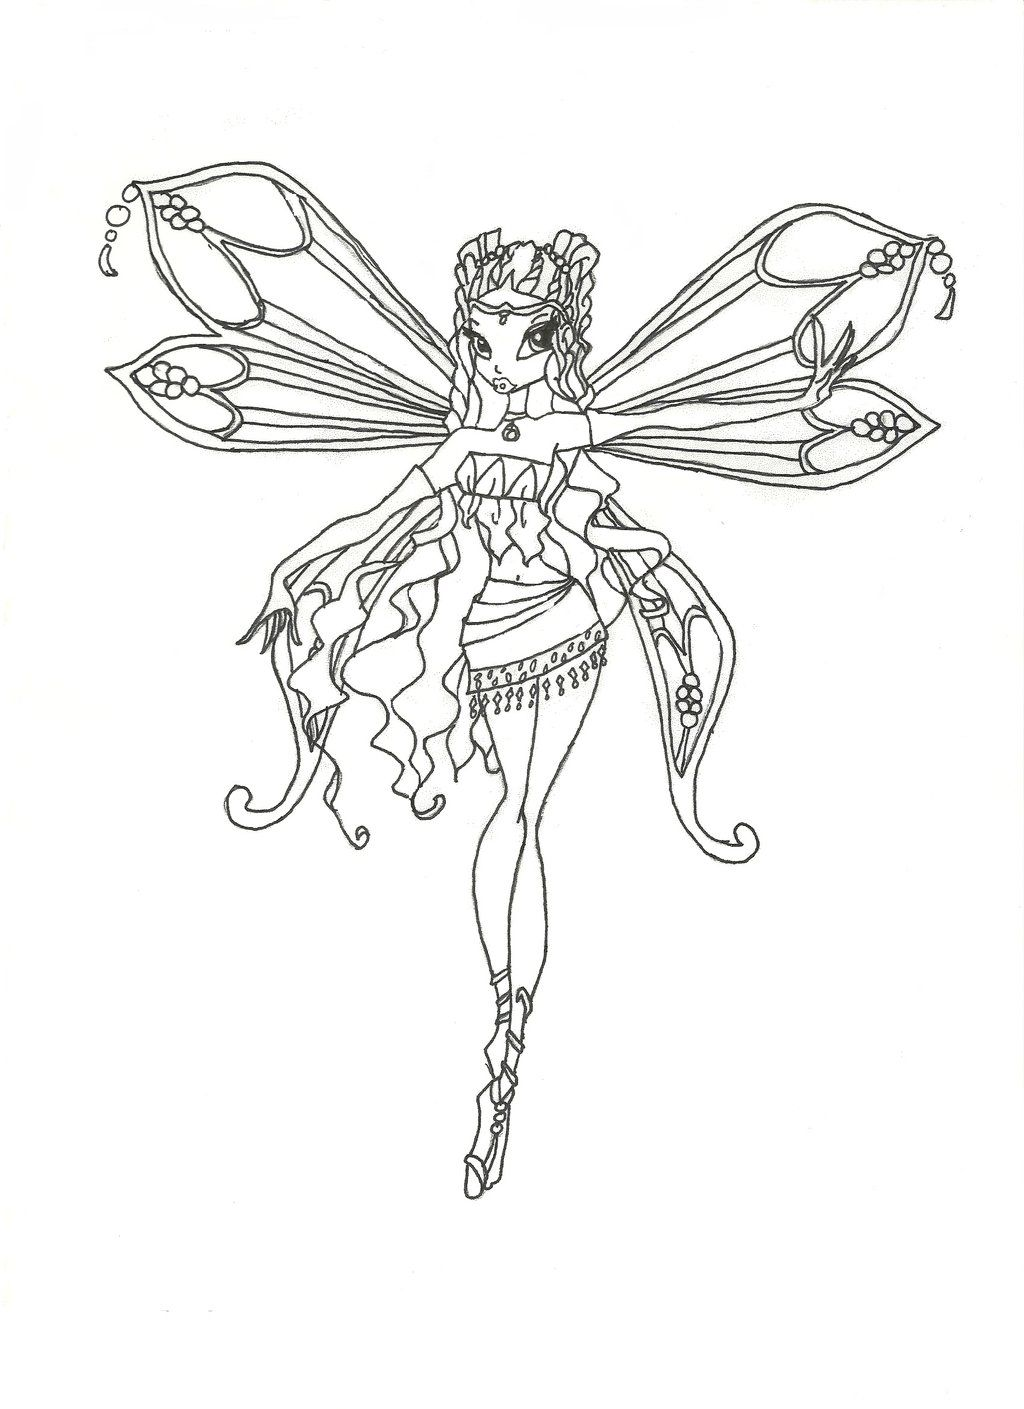 Winx Club Enchantix Layla Coloring Page By Winxmagic237 Deviantart Com On Deviantart Winx Club Coloring Pages Club Color